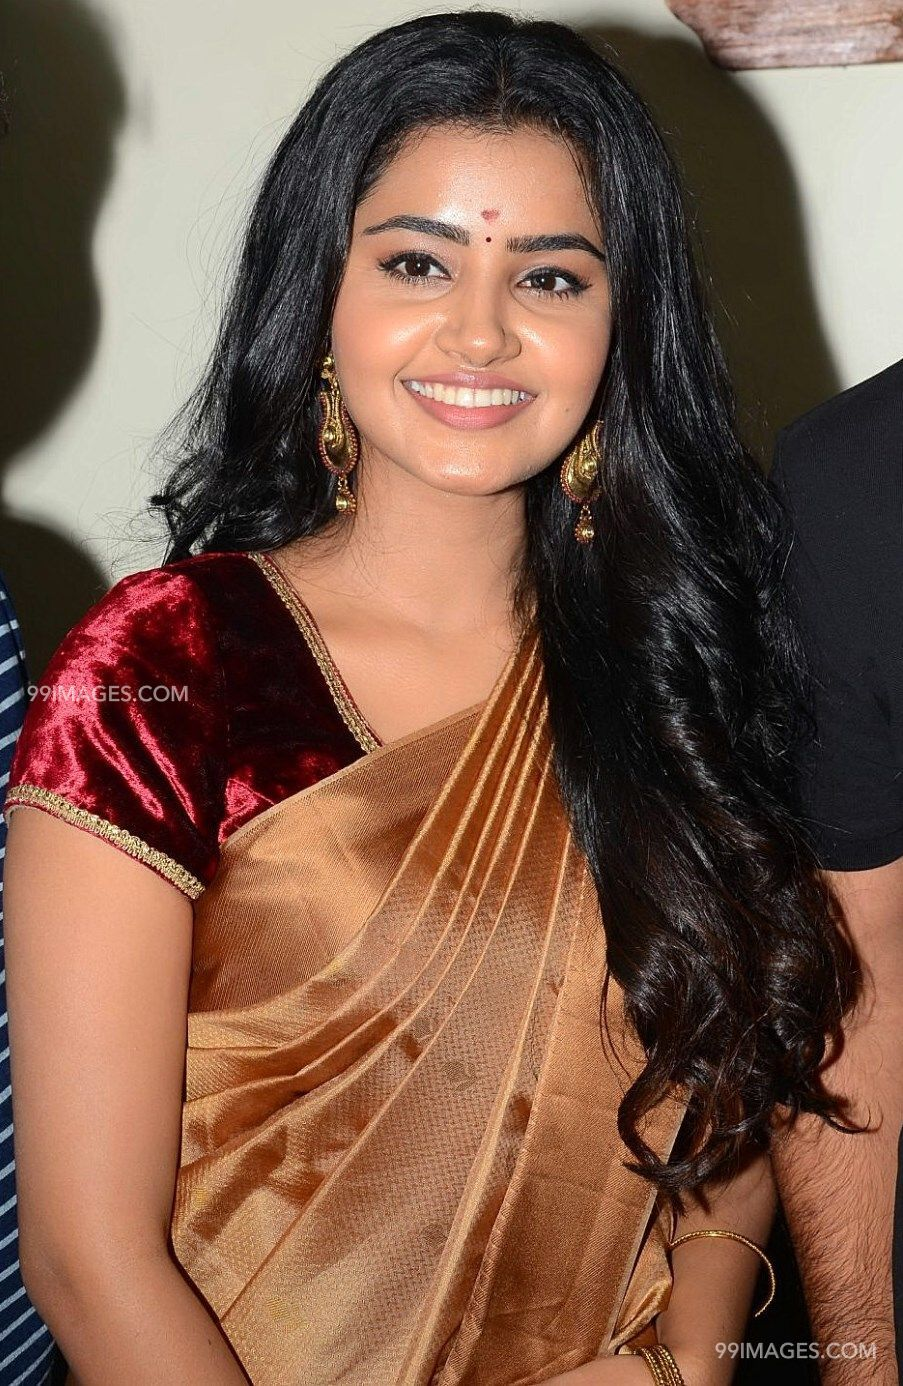 Anupama Parameswaran HD Wallpapers (Desktop Background / Android / iPhone) (1080p, 4k) (81784) - Anupama Parameswaran